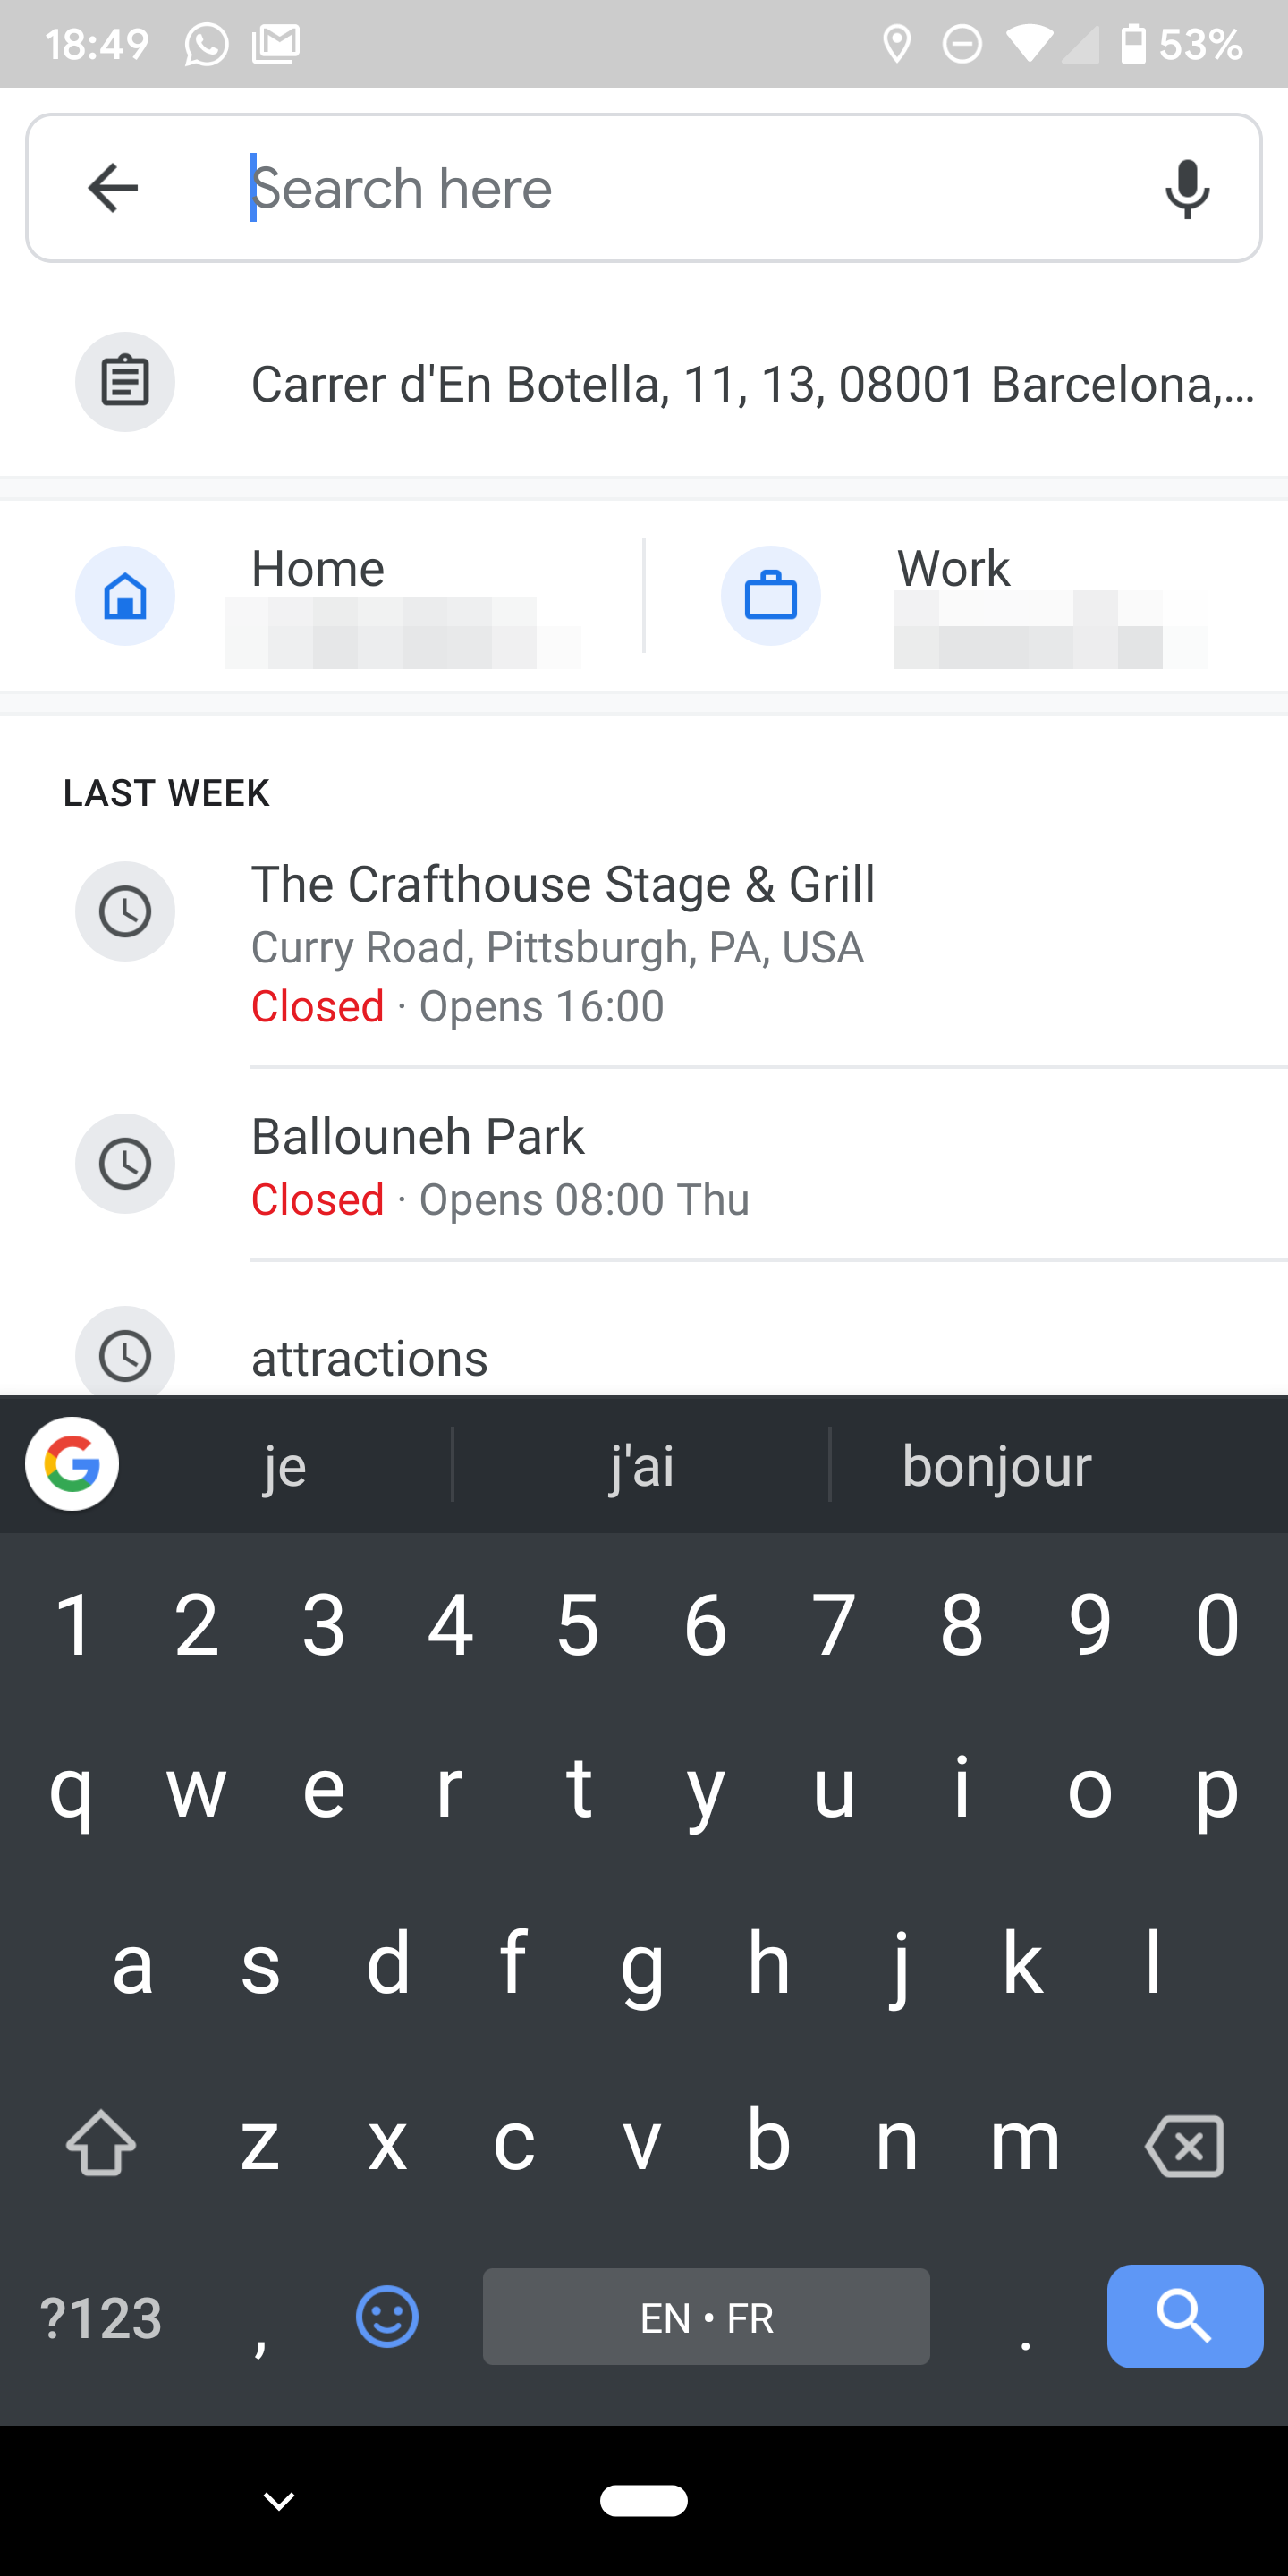 Google Maps automatically suggests pasting addresses from your clipboard